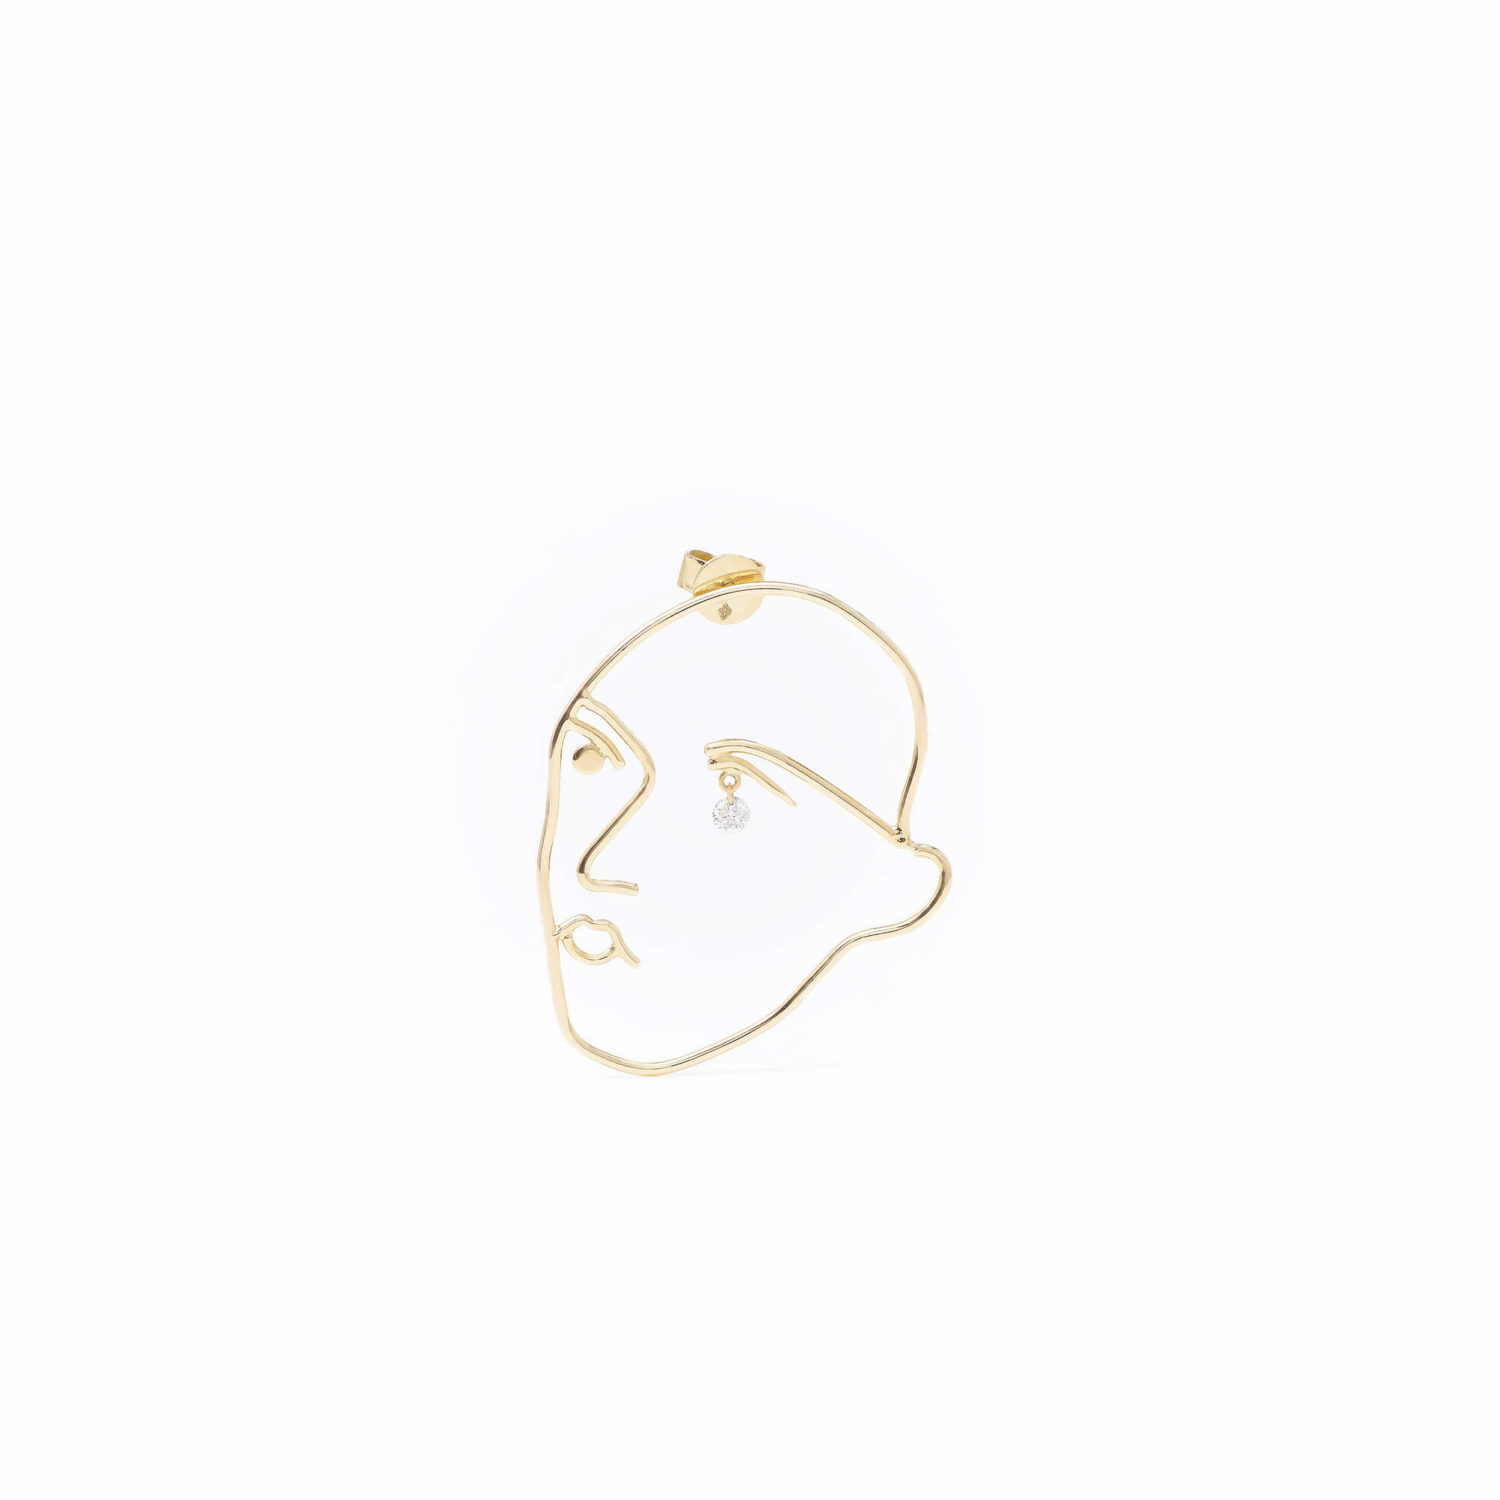 BOUCLE D'OREILLE MATISSE 1 diamant PERSEE